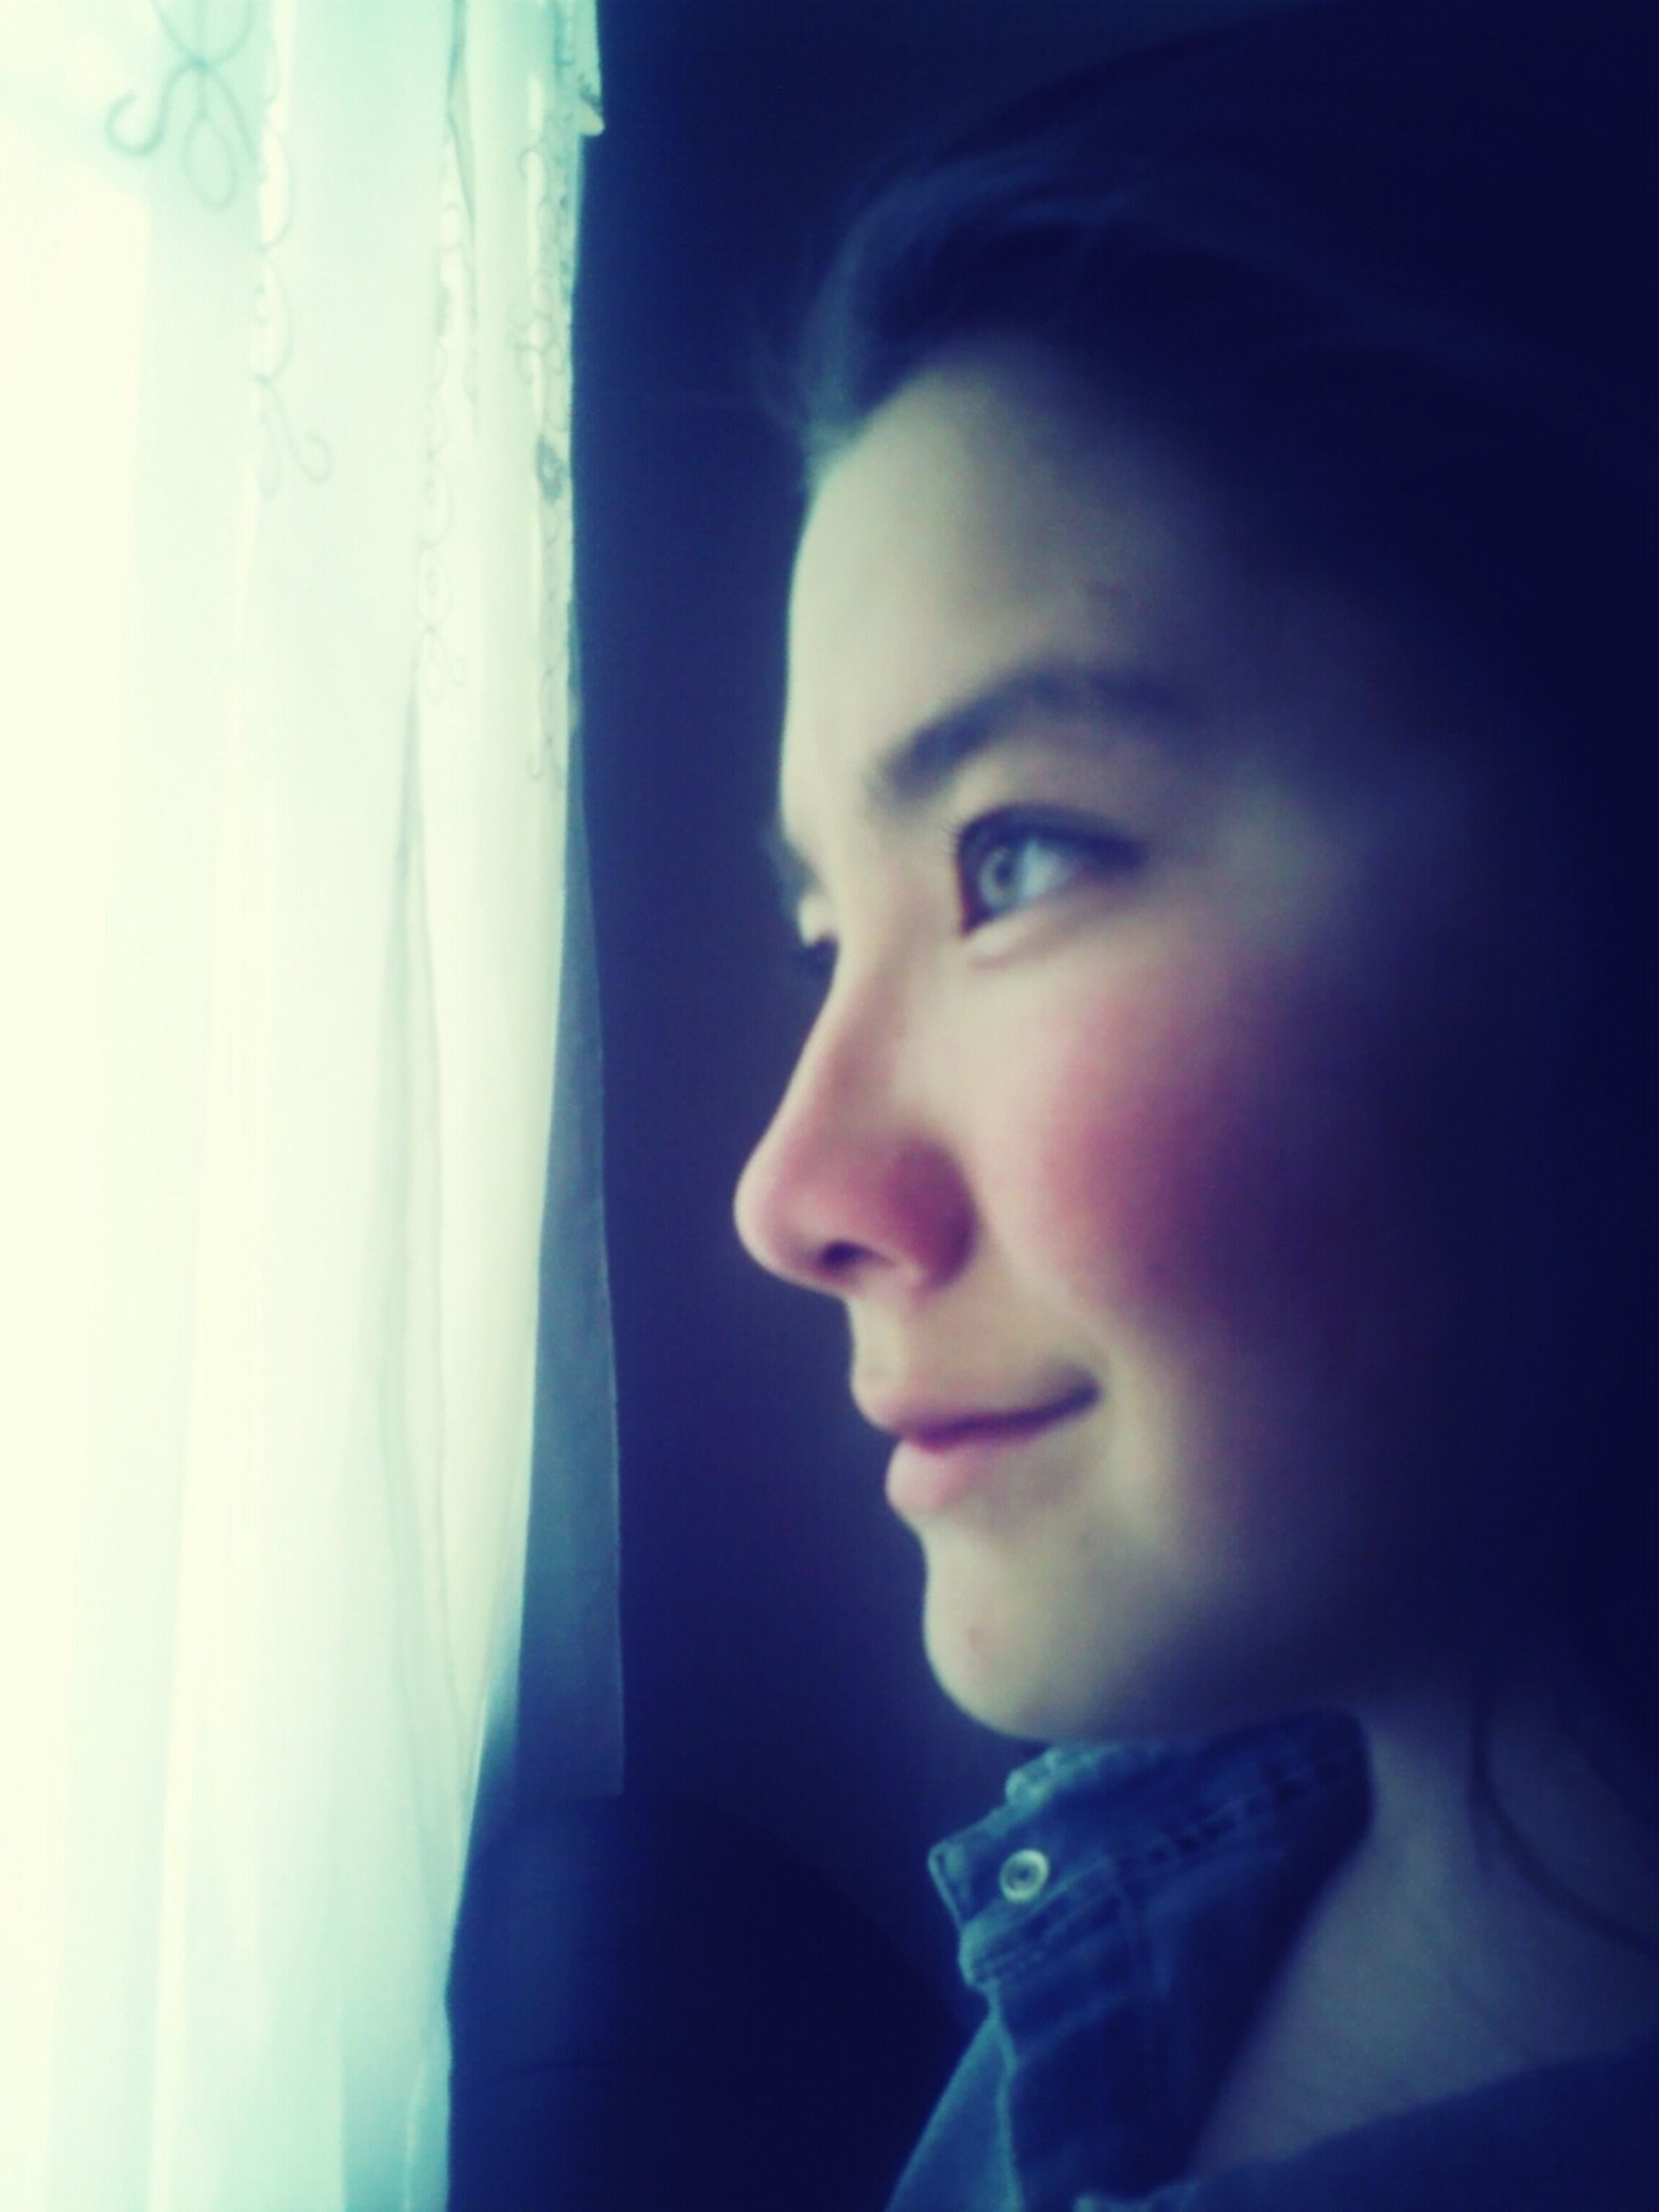 headshot, person, lifestyles, young adult, indoors, leisure activity, contemplation, portrait, head and shoulders, looking at camera, young women, front view, close-up, human face, window, copy space, serious